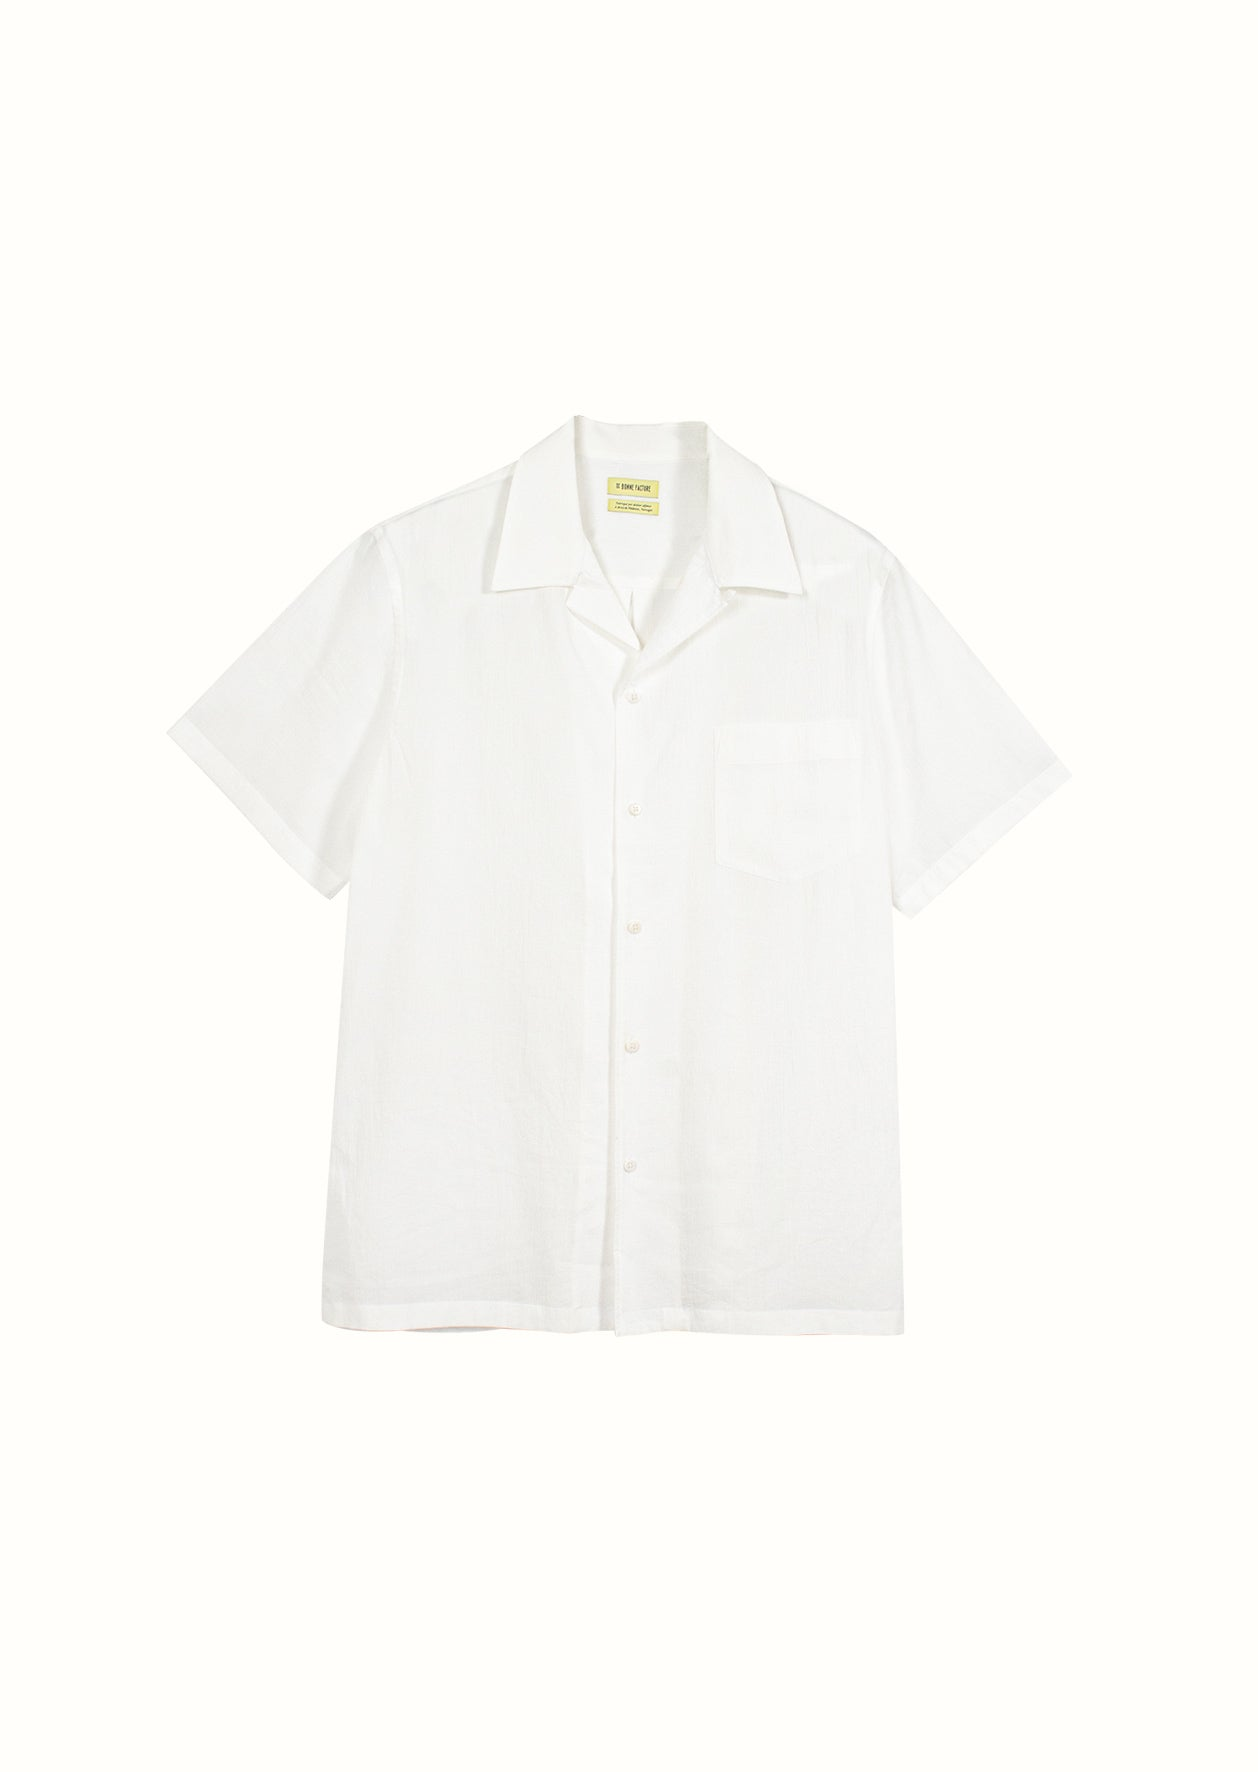 Short sleeve camp collar shirt - Crumpled cotton voile - White